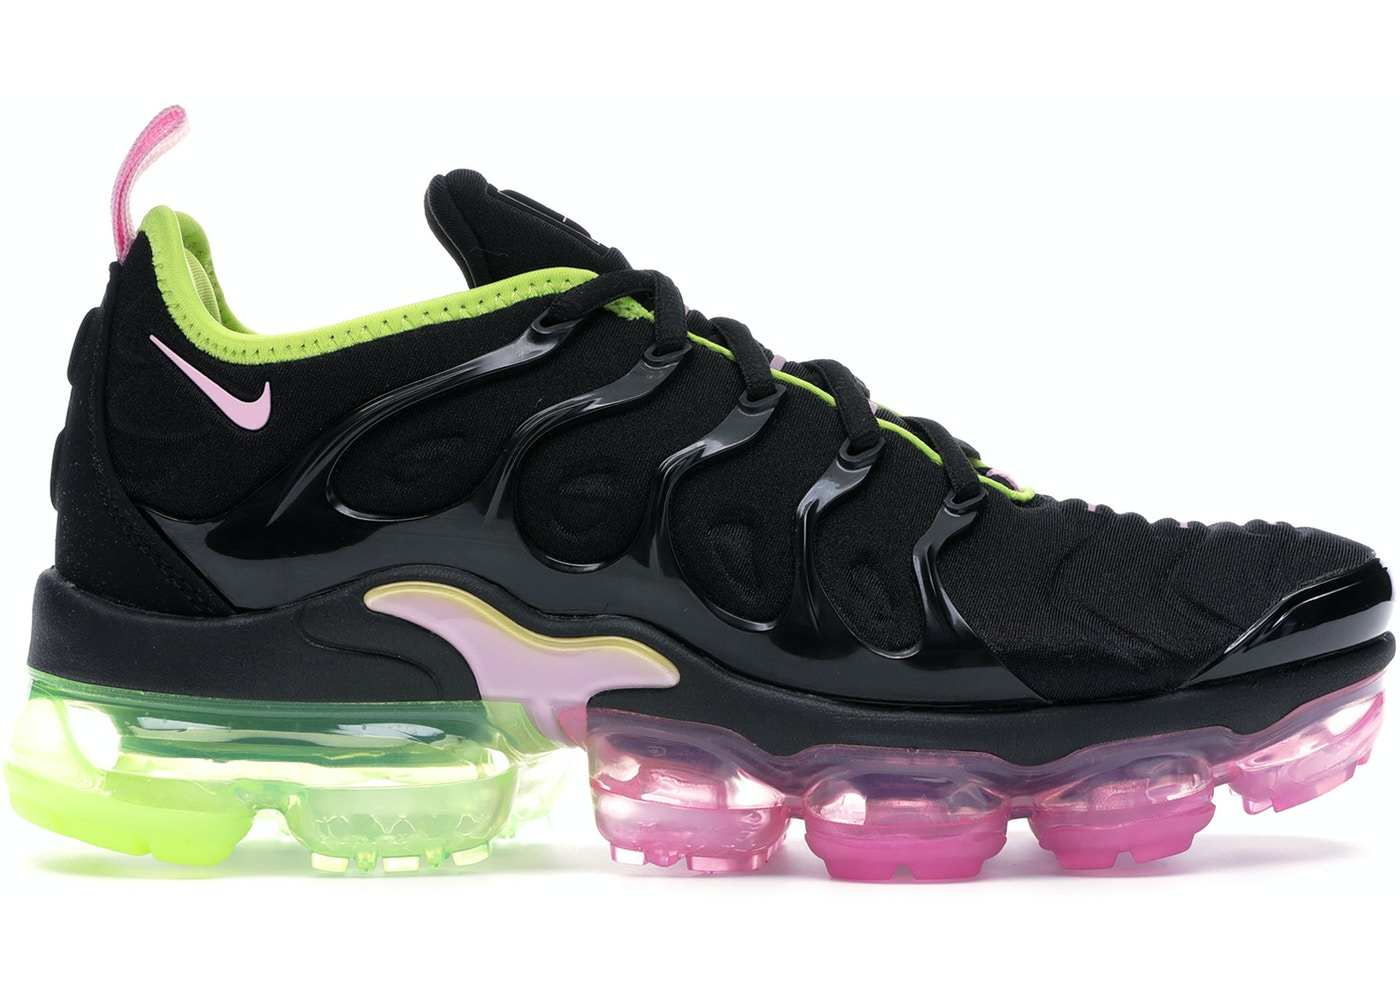 official photos a9c1b 9069f Air VaporMax Plus Black Pink Rise Volt (W)